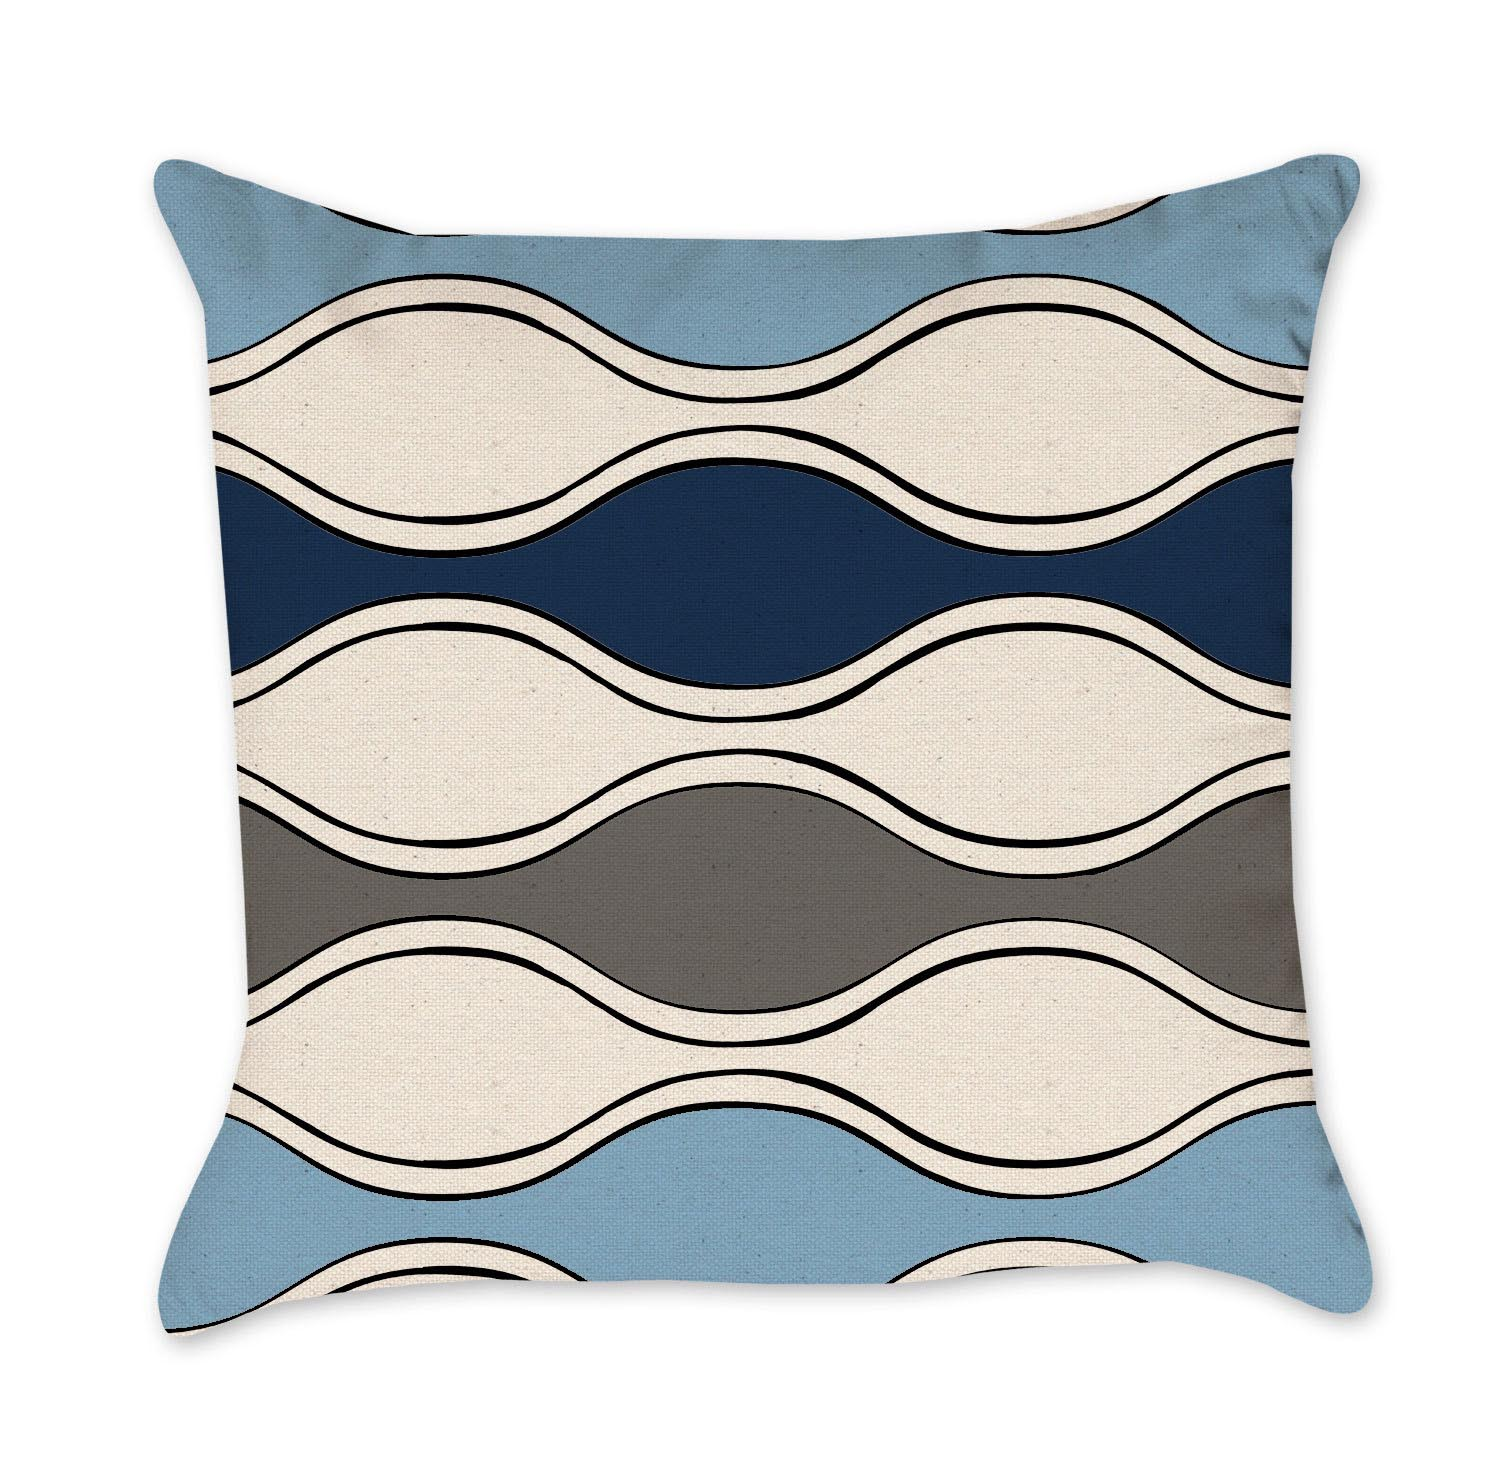 Light Blue Chevron Pillows